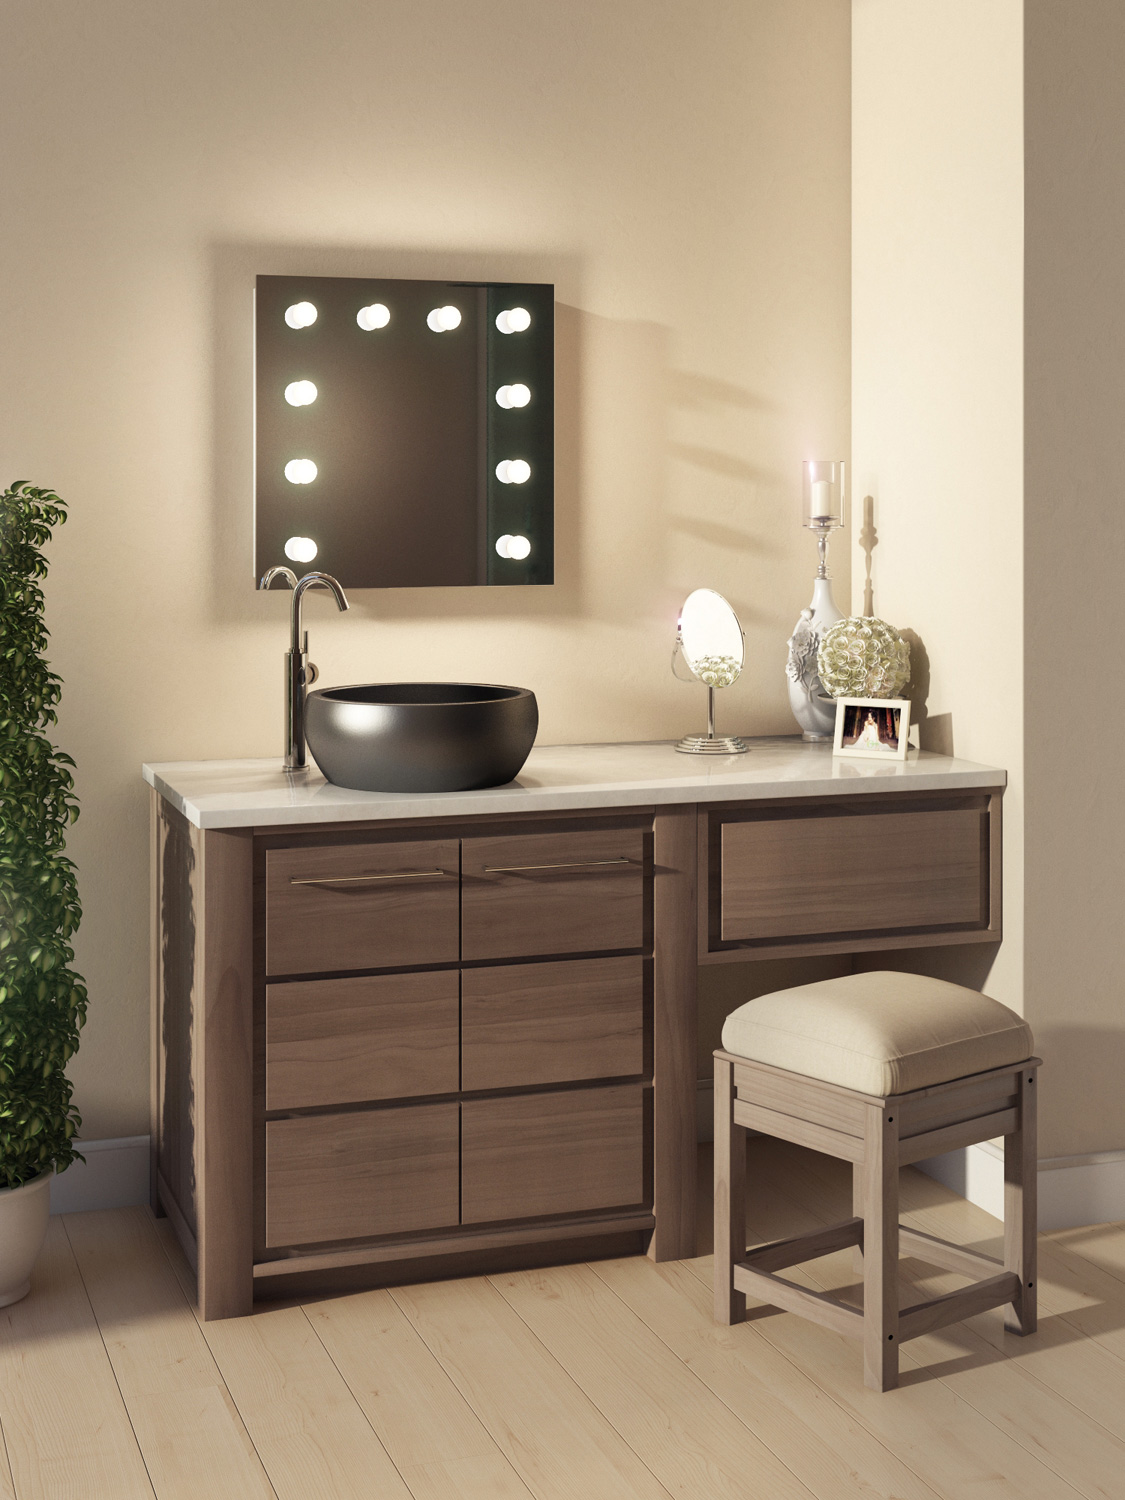 Diamond X Hollywood Audio Vanity Mirror With Dimmable LED ...